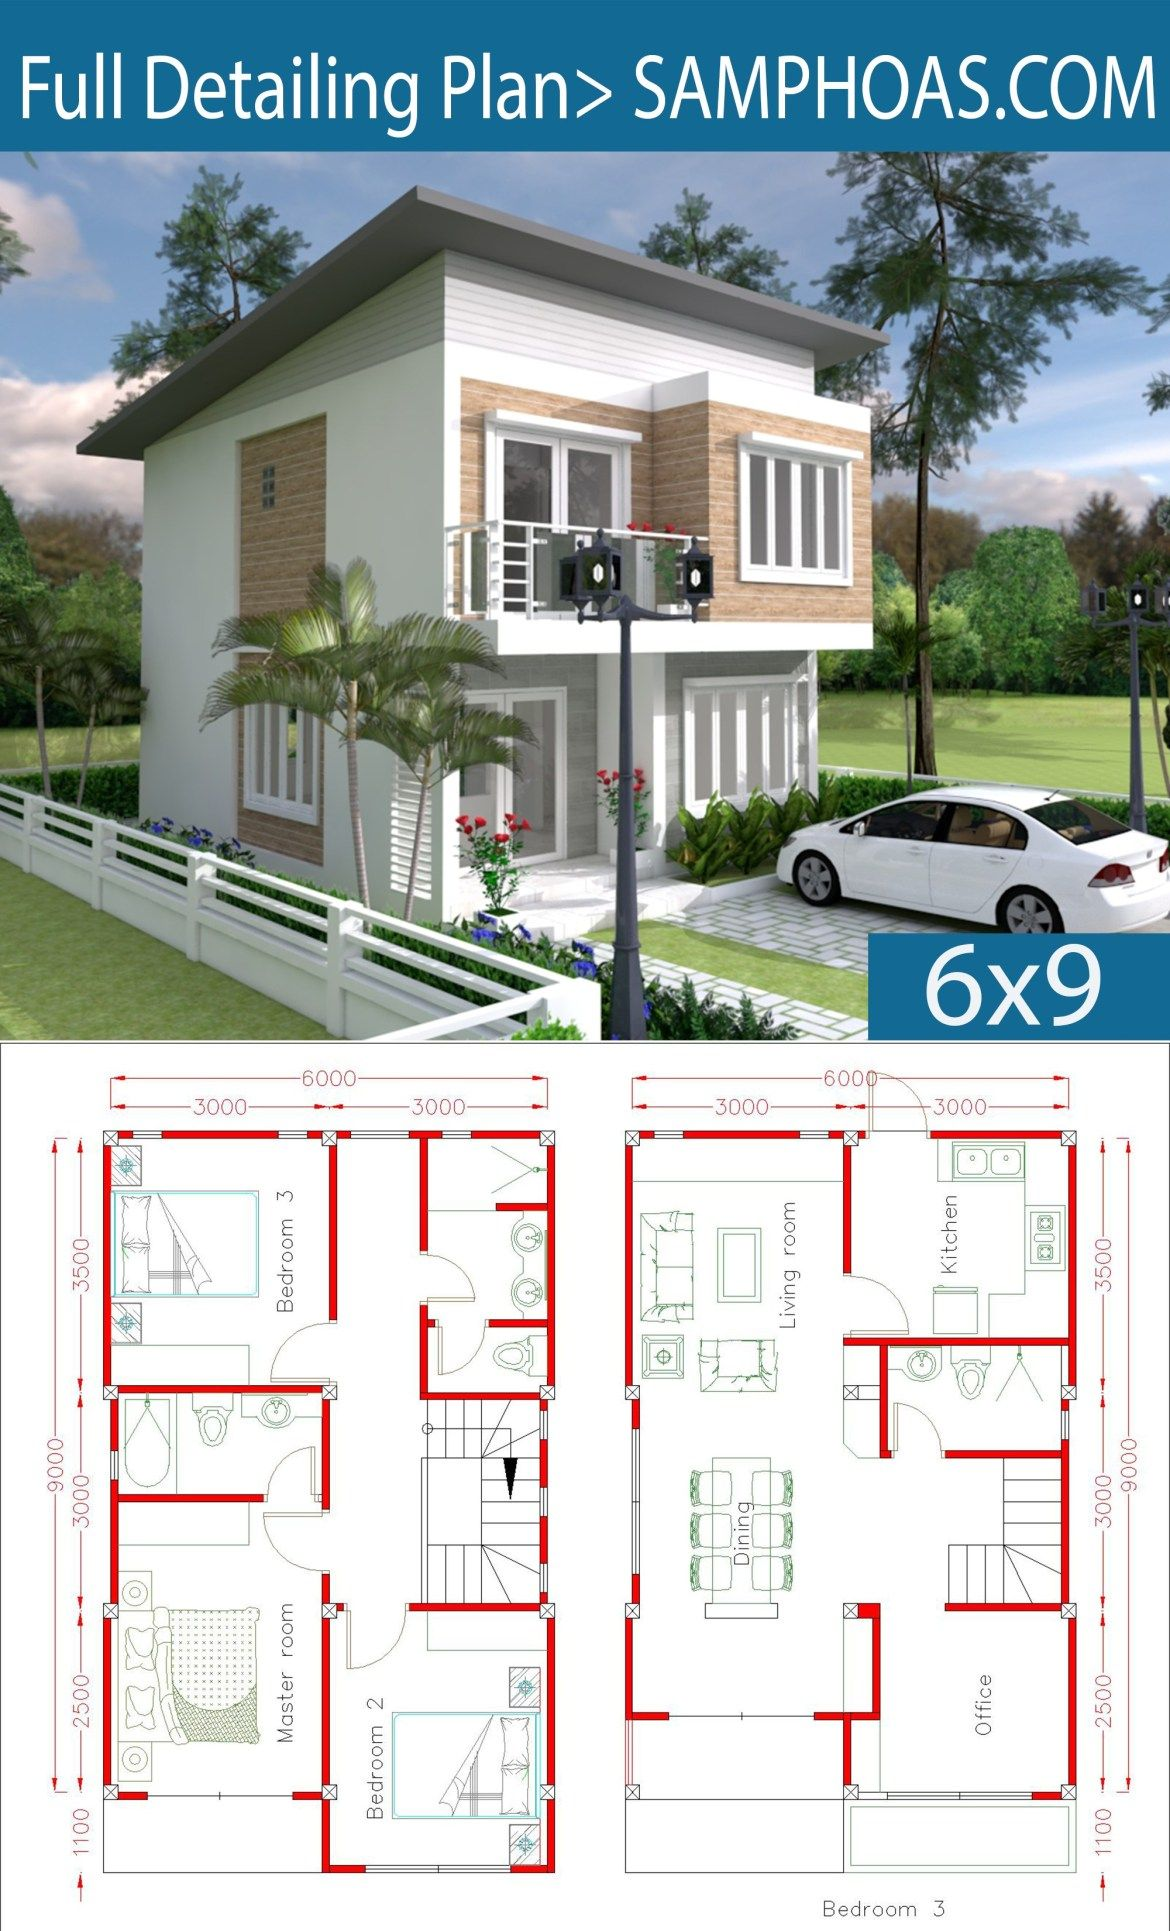 Simple Home Design Plan 6x9m With 3 Bedrooms Samphoas Plansearch Simple House Design Simple House House Layout Plans